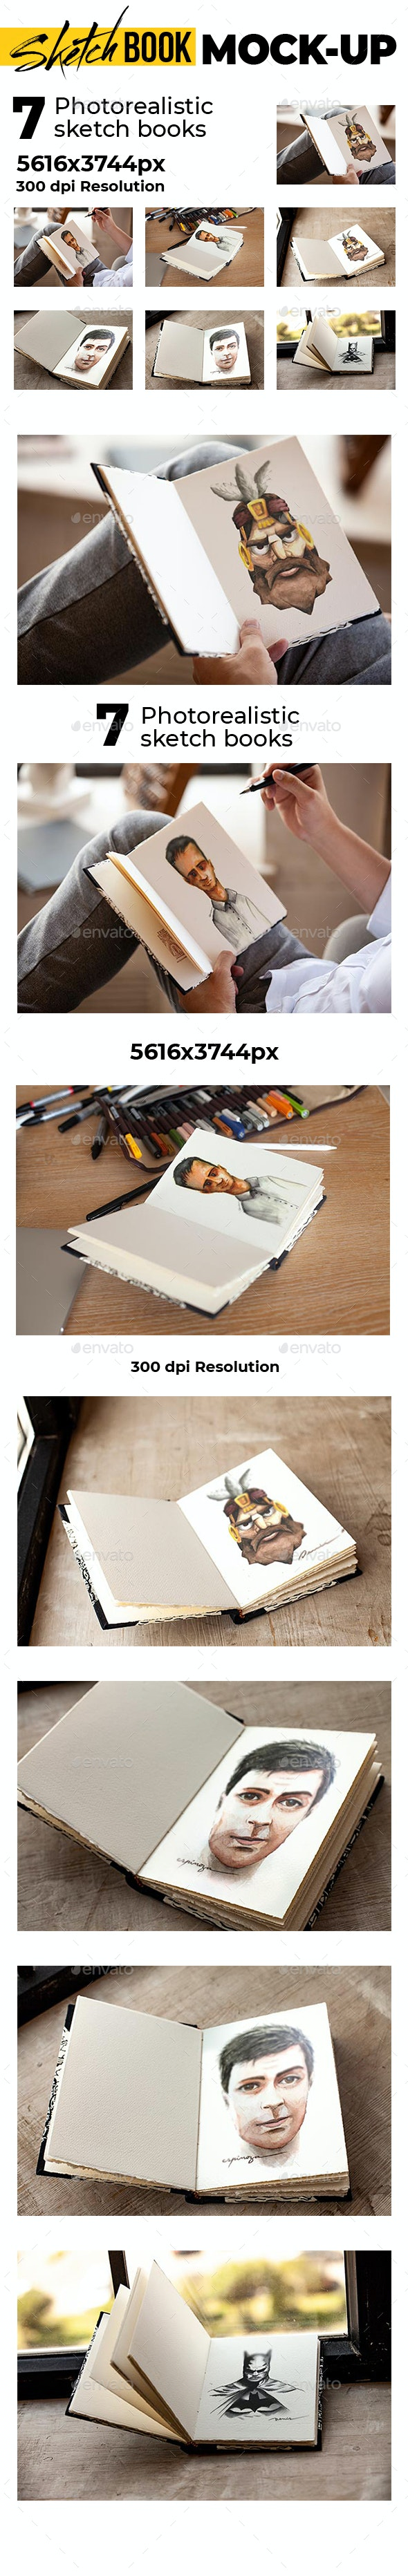 Sketch Book Photorealistic Mock-up - Product Mock-Ups Graphics